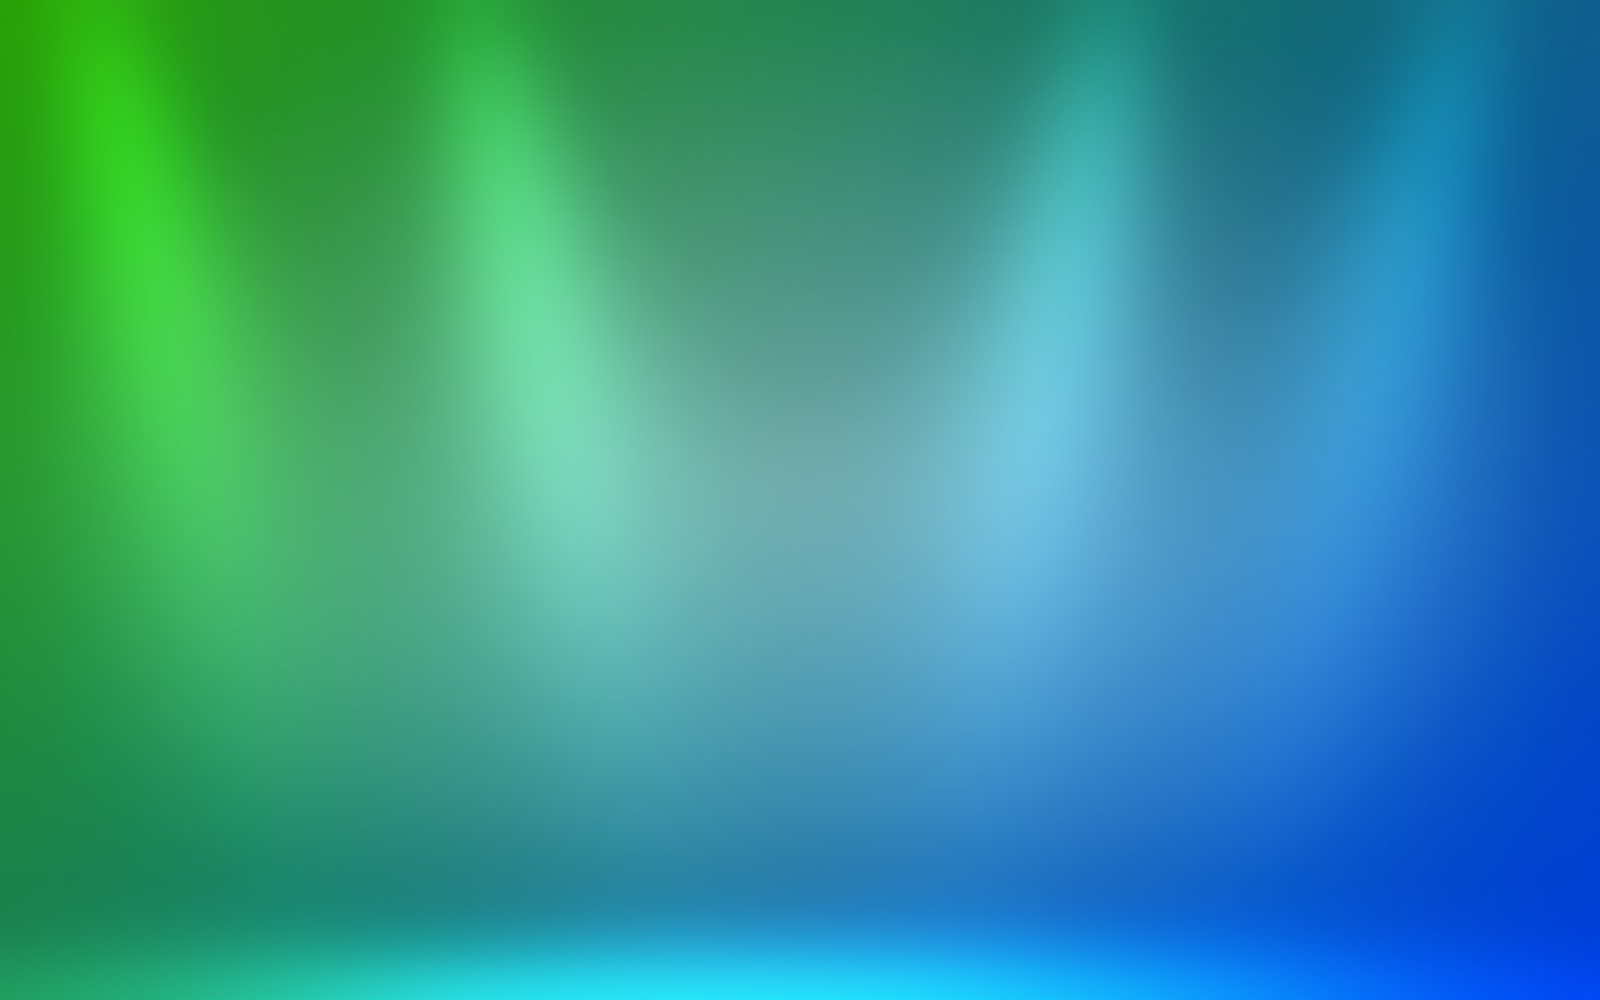 greenish blue wallpaper - photo #1